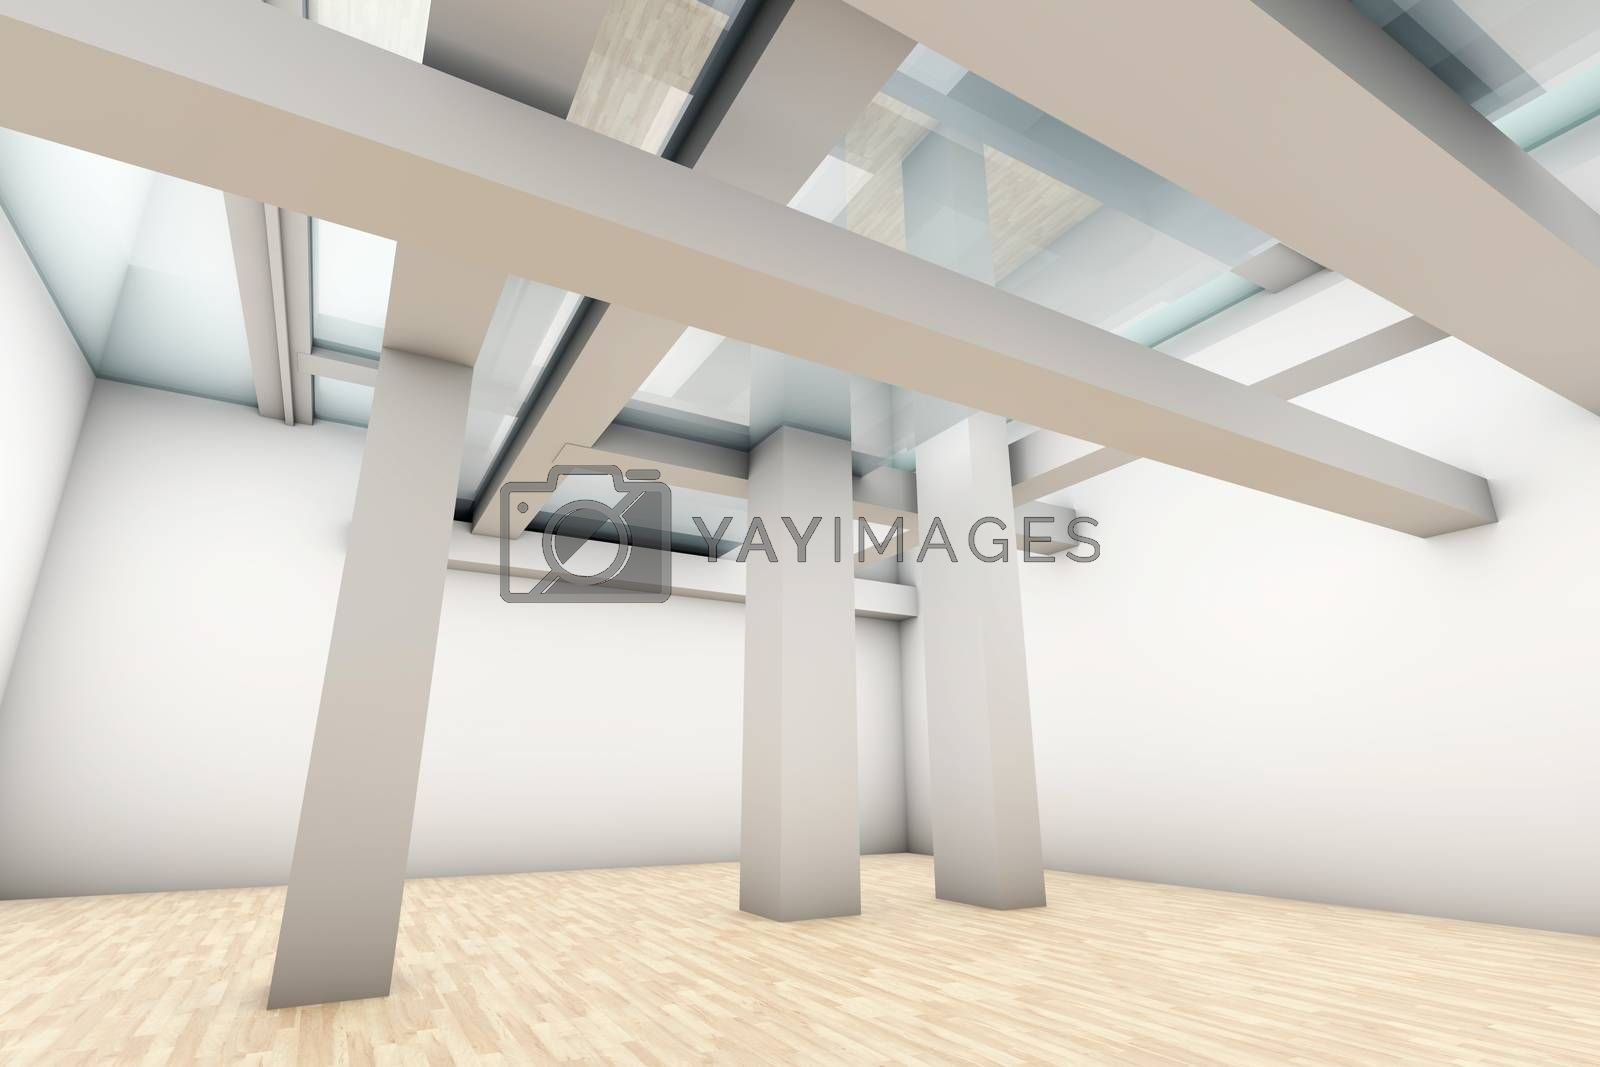 A modern architecture Interior. 3D rendered Illustration.